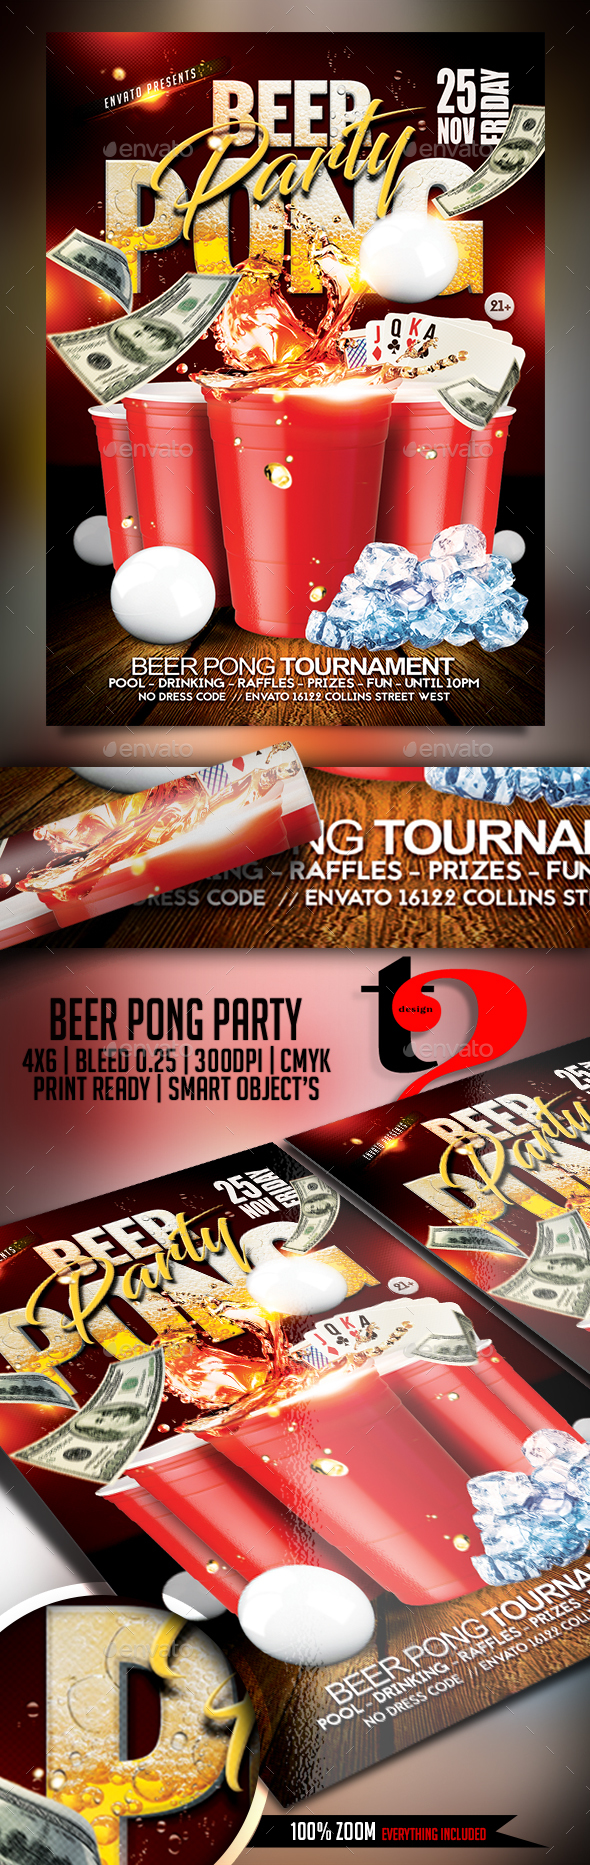 Beer Pong Tournament Flyer - Clubs & Parties Events